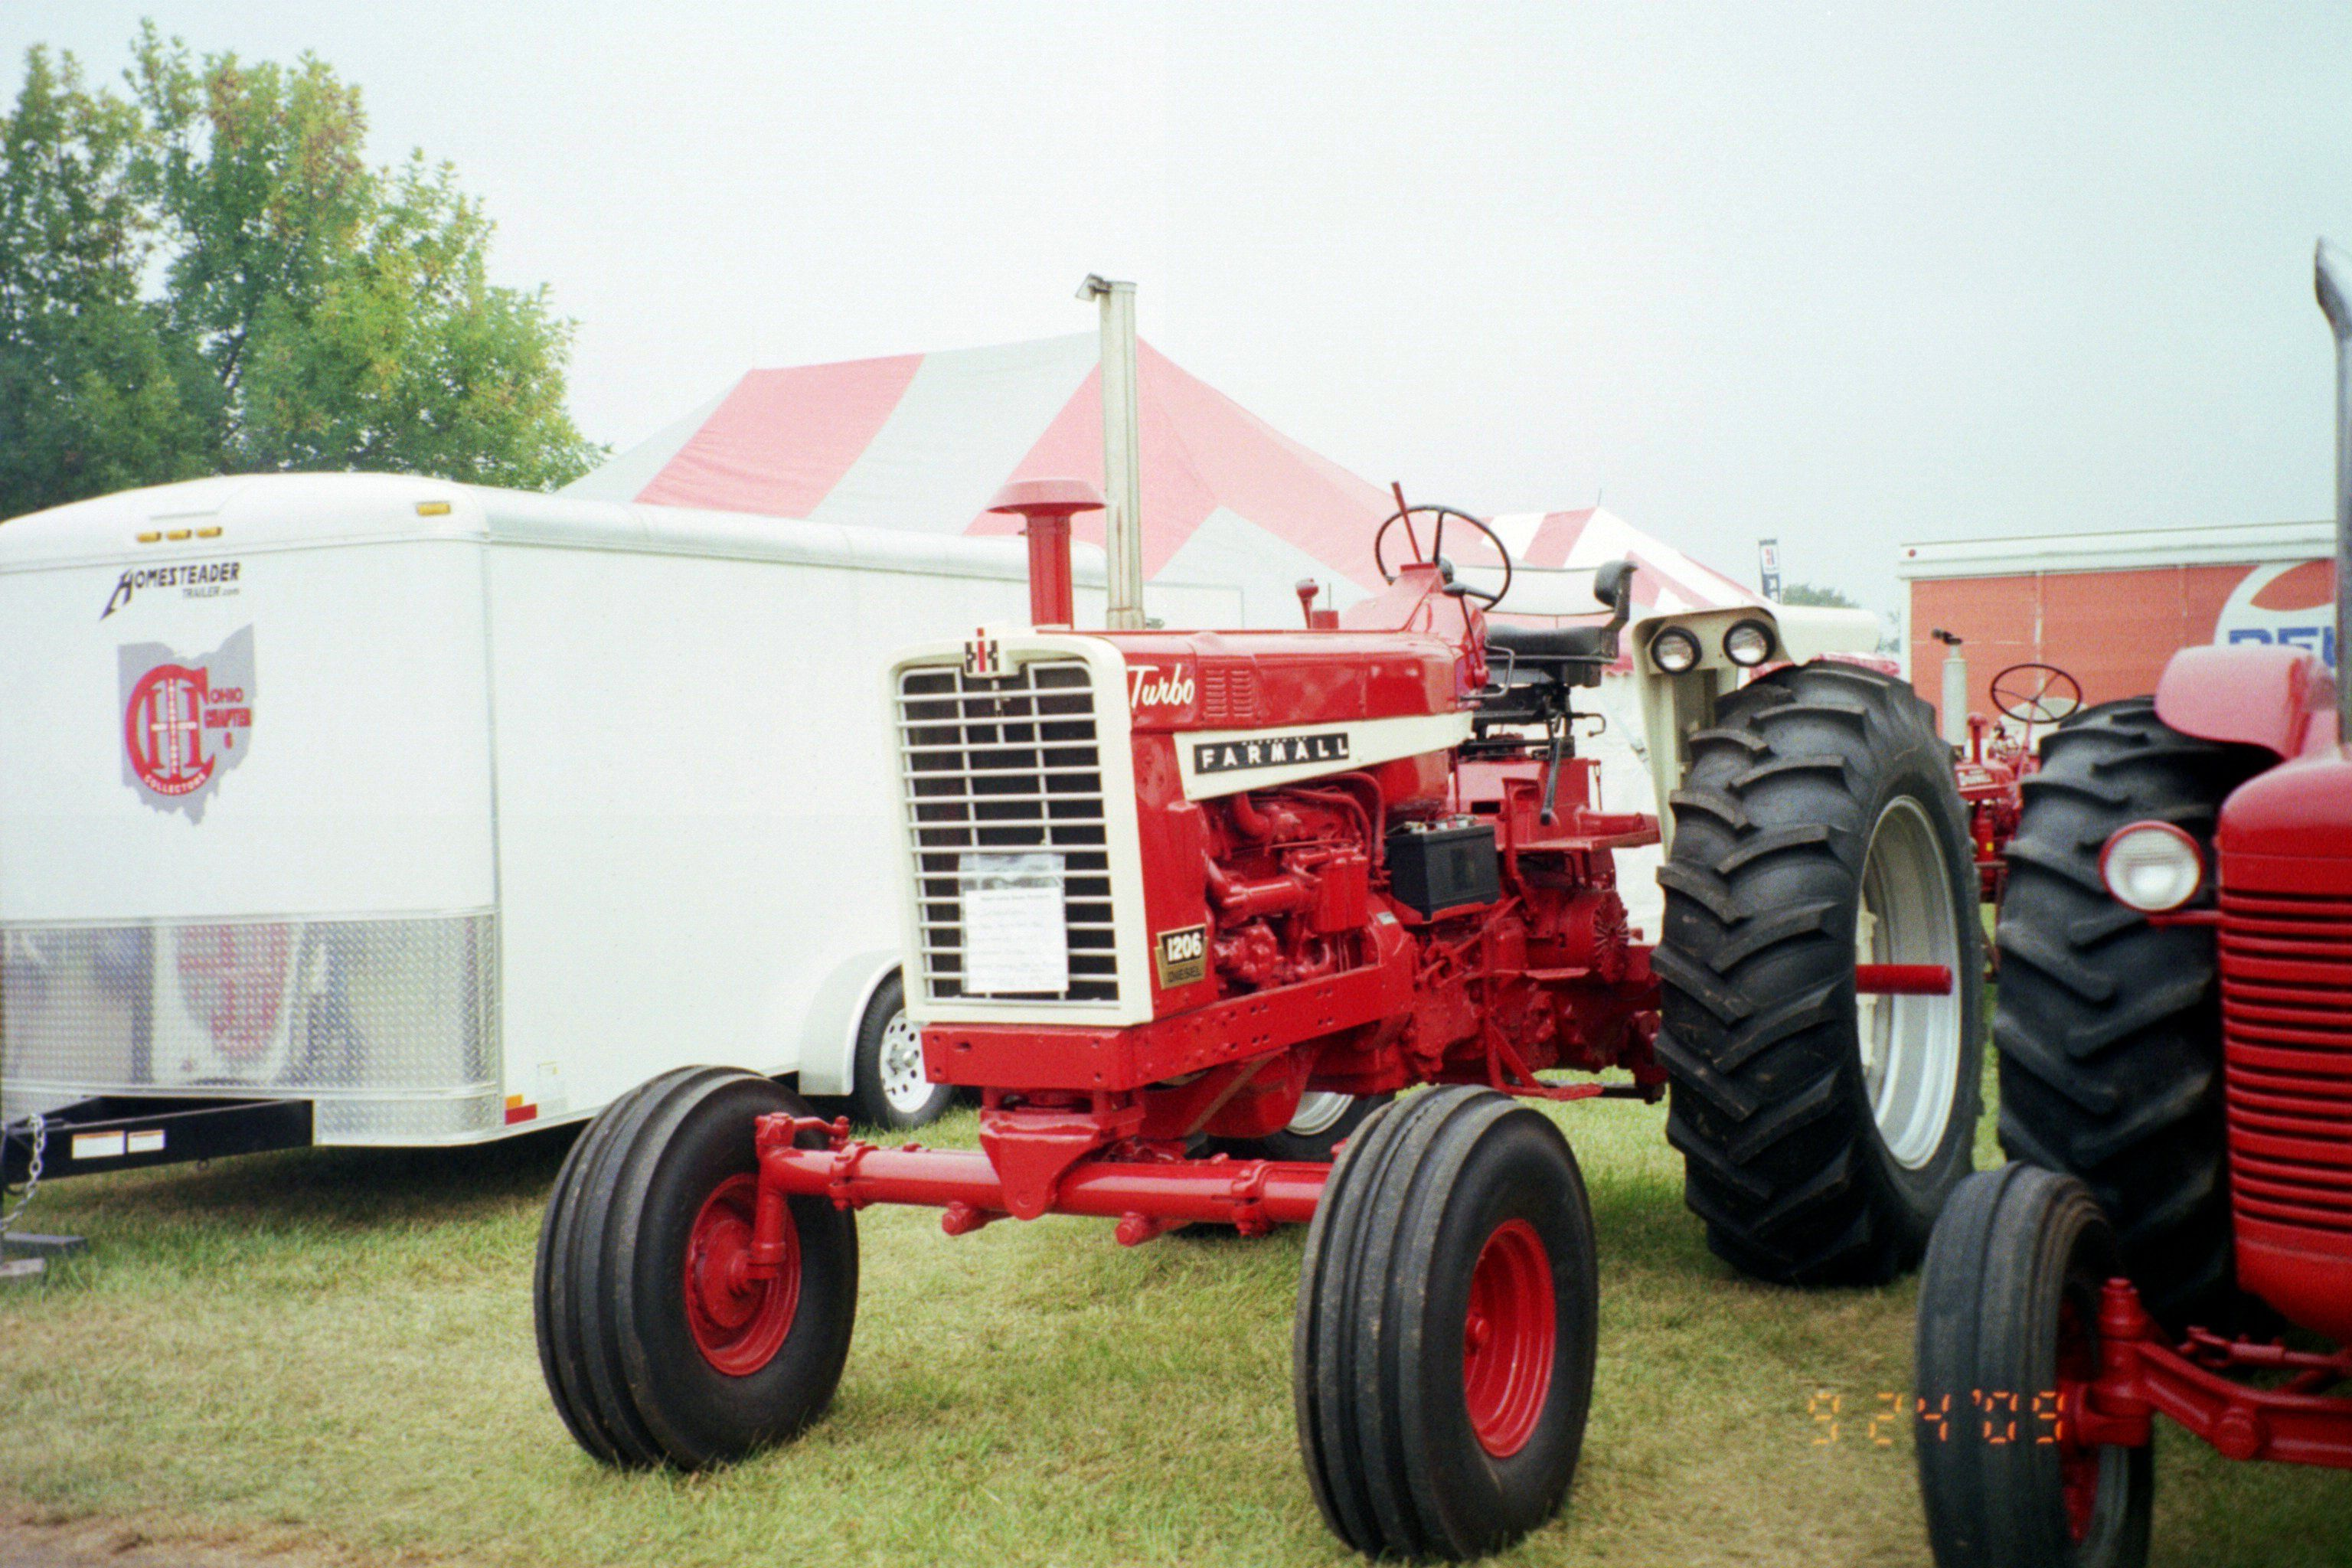 Farmall 1206 Turbo 112hp Main competitors were The 120hp